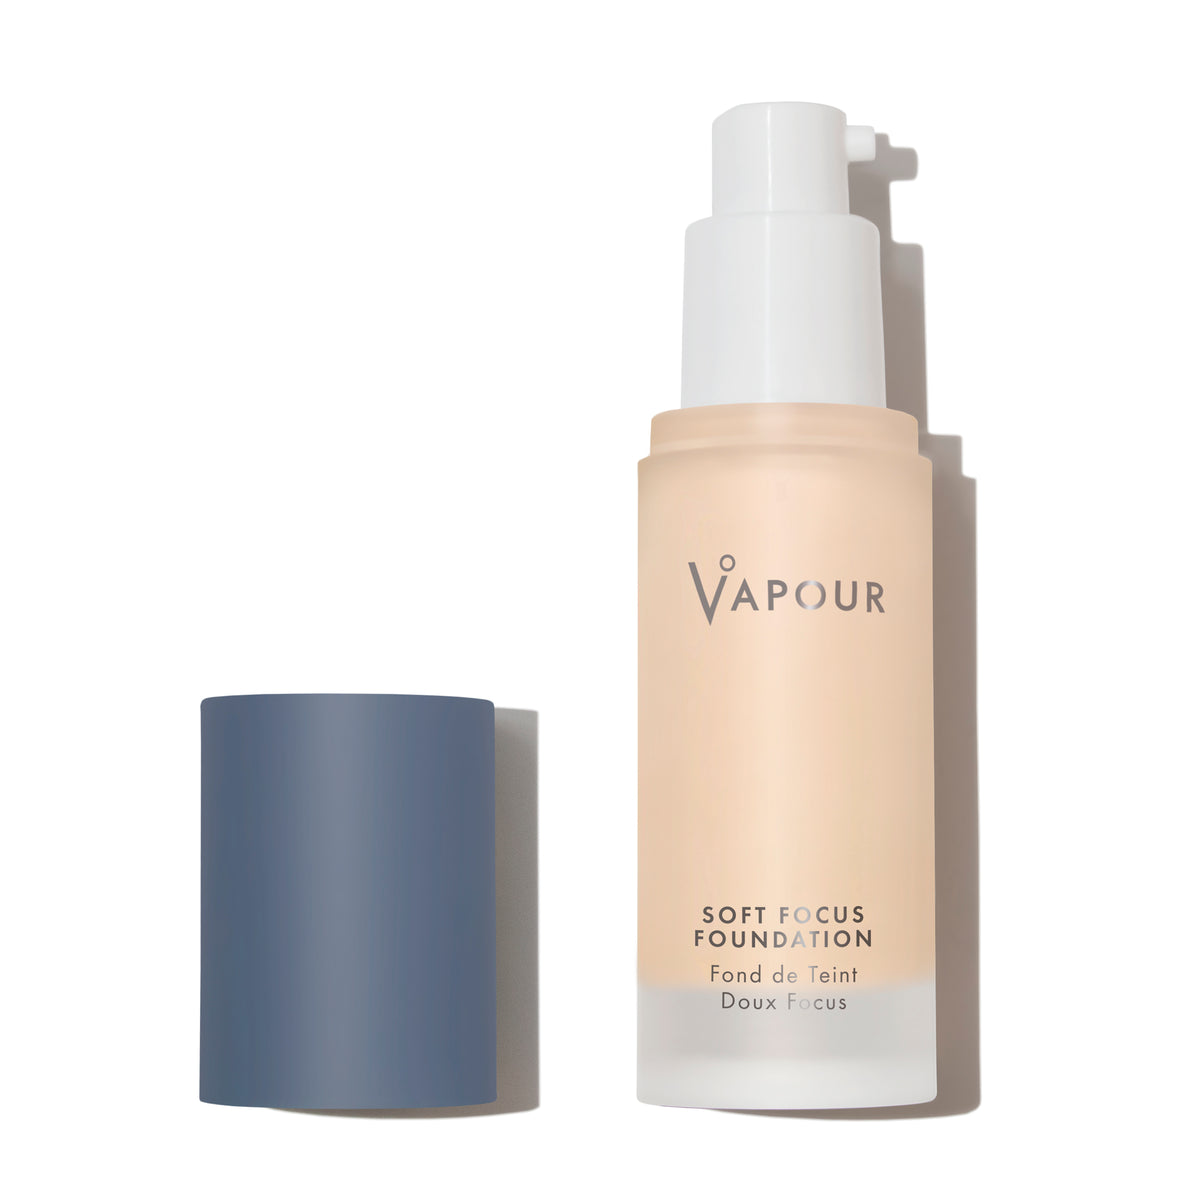 Vapour Soft Focus Foundation - AILLEA